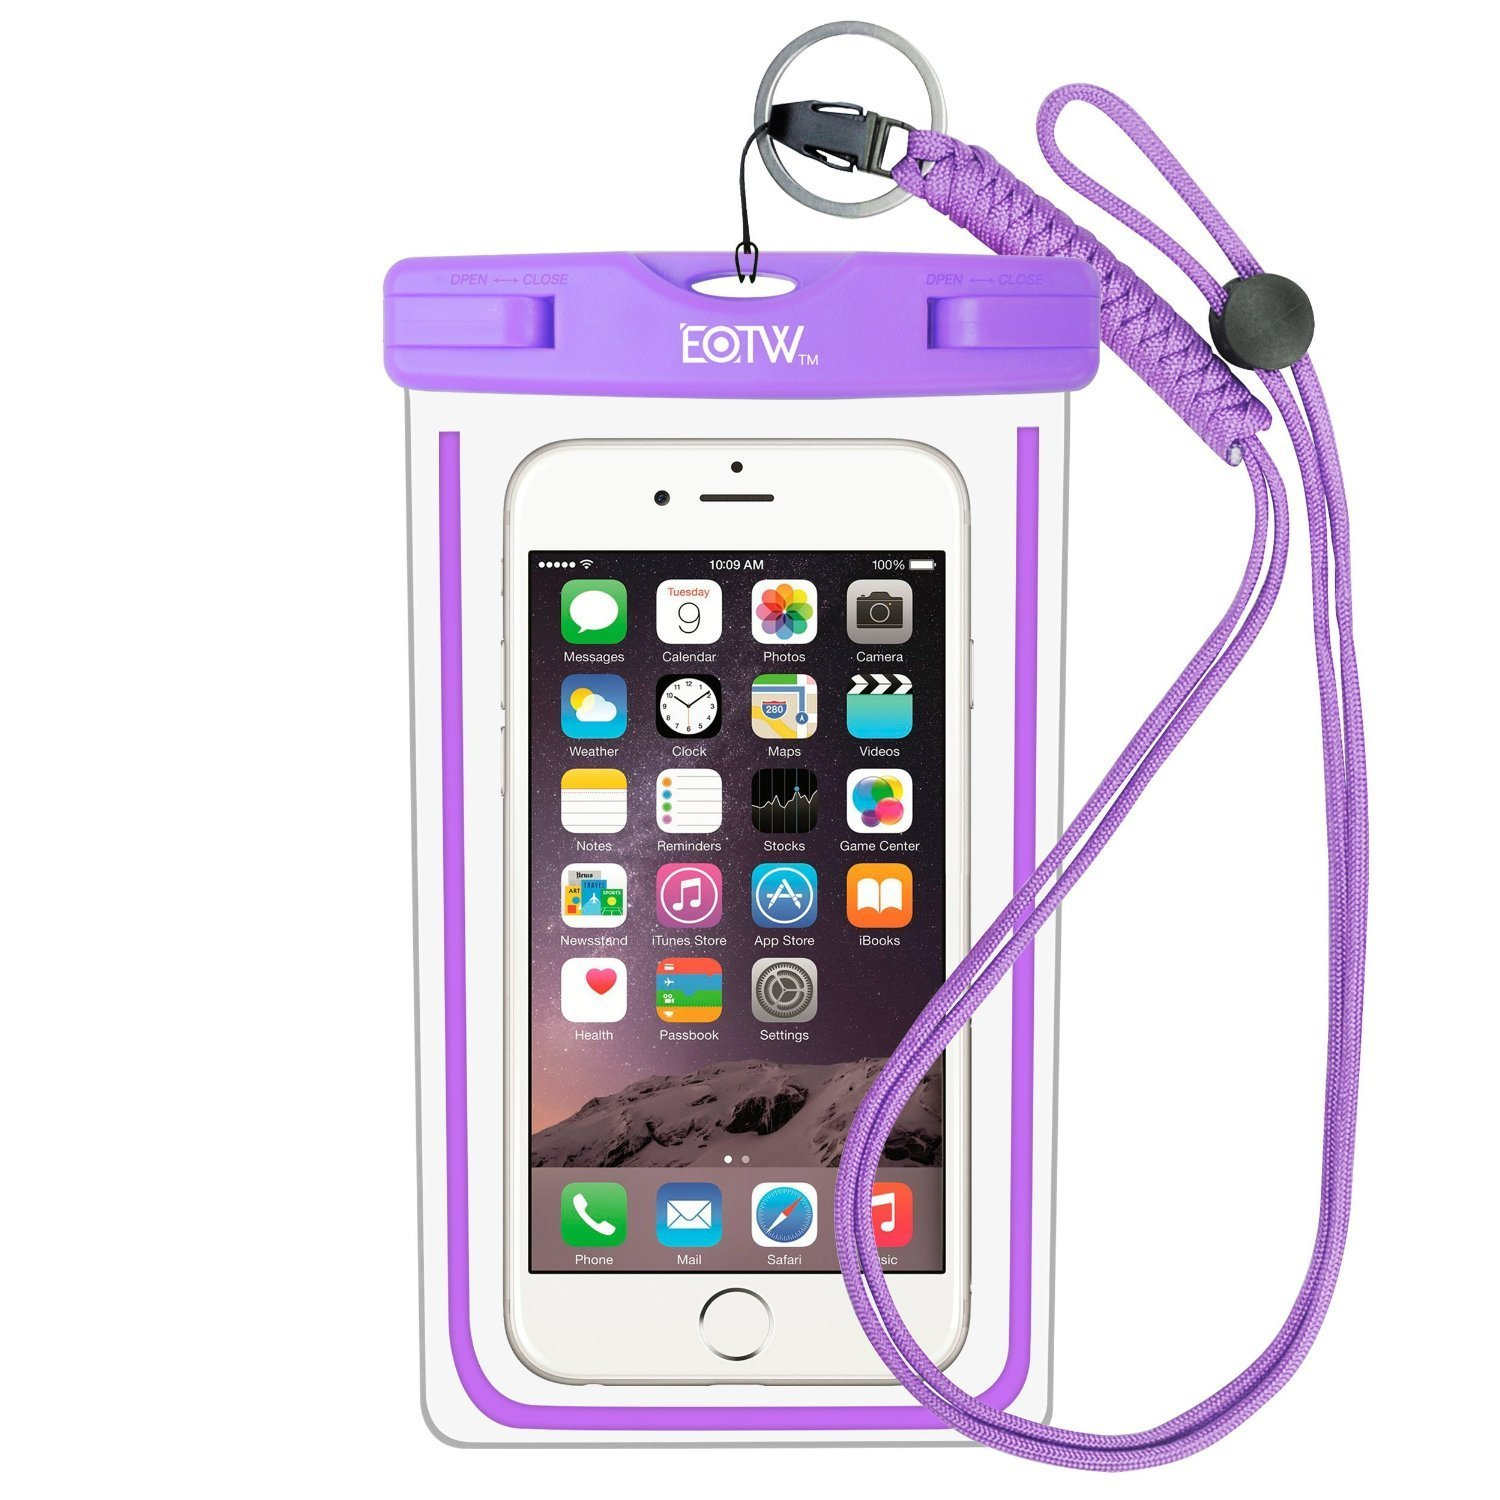 """EOTW Waterproof Phone Pouch, IPX8 Universal Waterproof Case Bag Fit for iPhone Xs Max XS XR X Samsung Galaxy s10/s9/s8 up to 6.5"""" Protective Pouch for Water Parks/Beach/Cruise/Pools"""